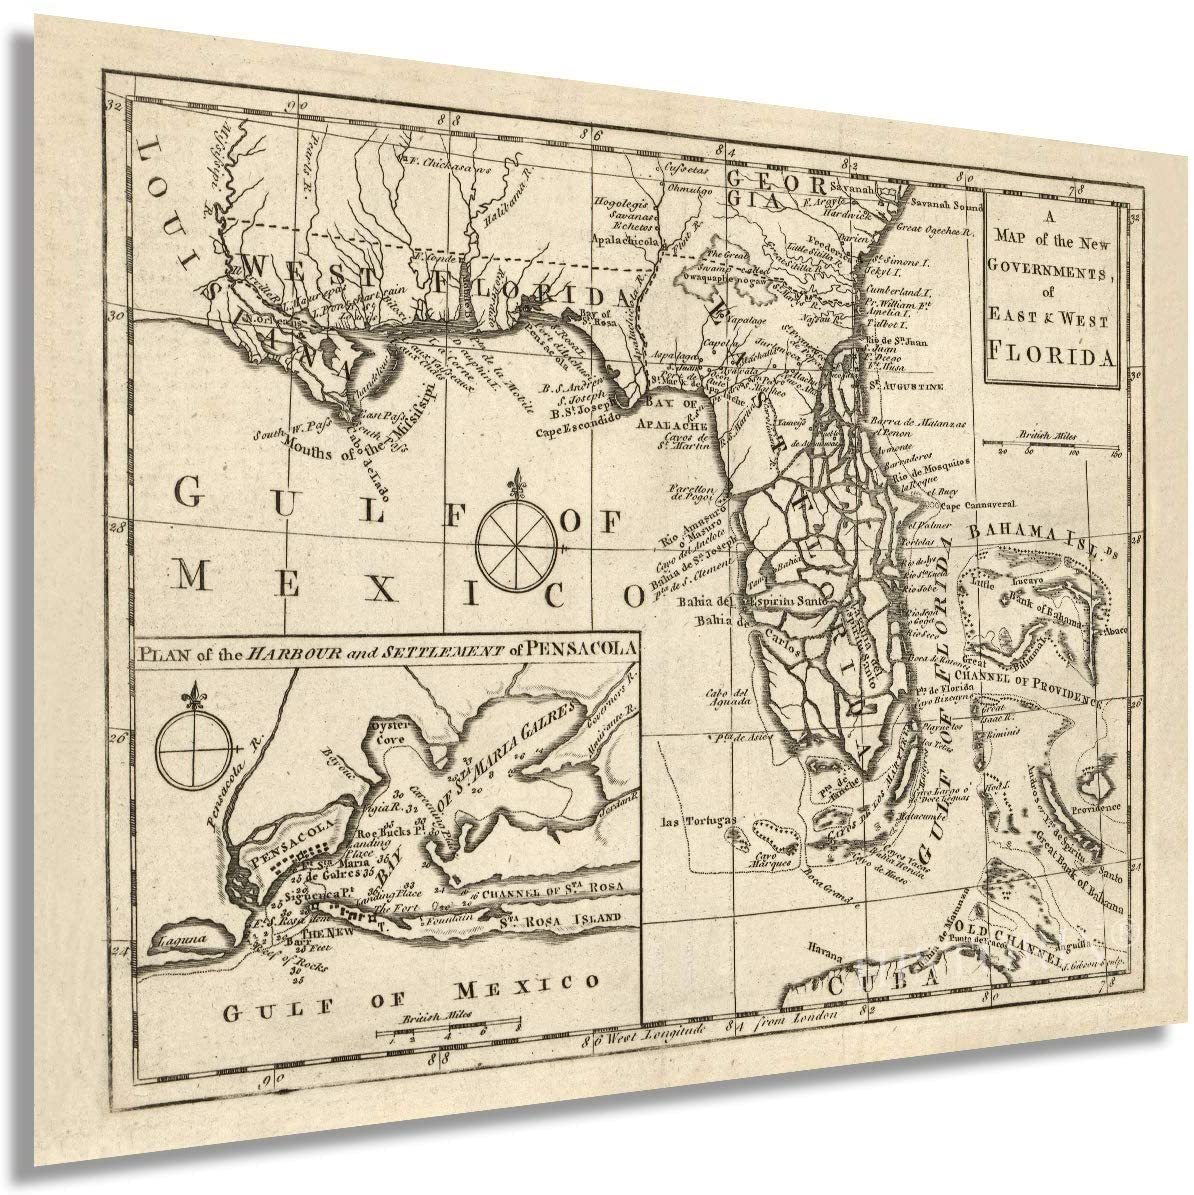 1763 East & West Florida Map - Vintage Map Wall Art - A Map of the New Governmen - $34.99 - $39.99